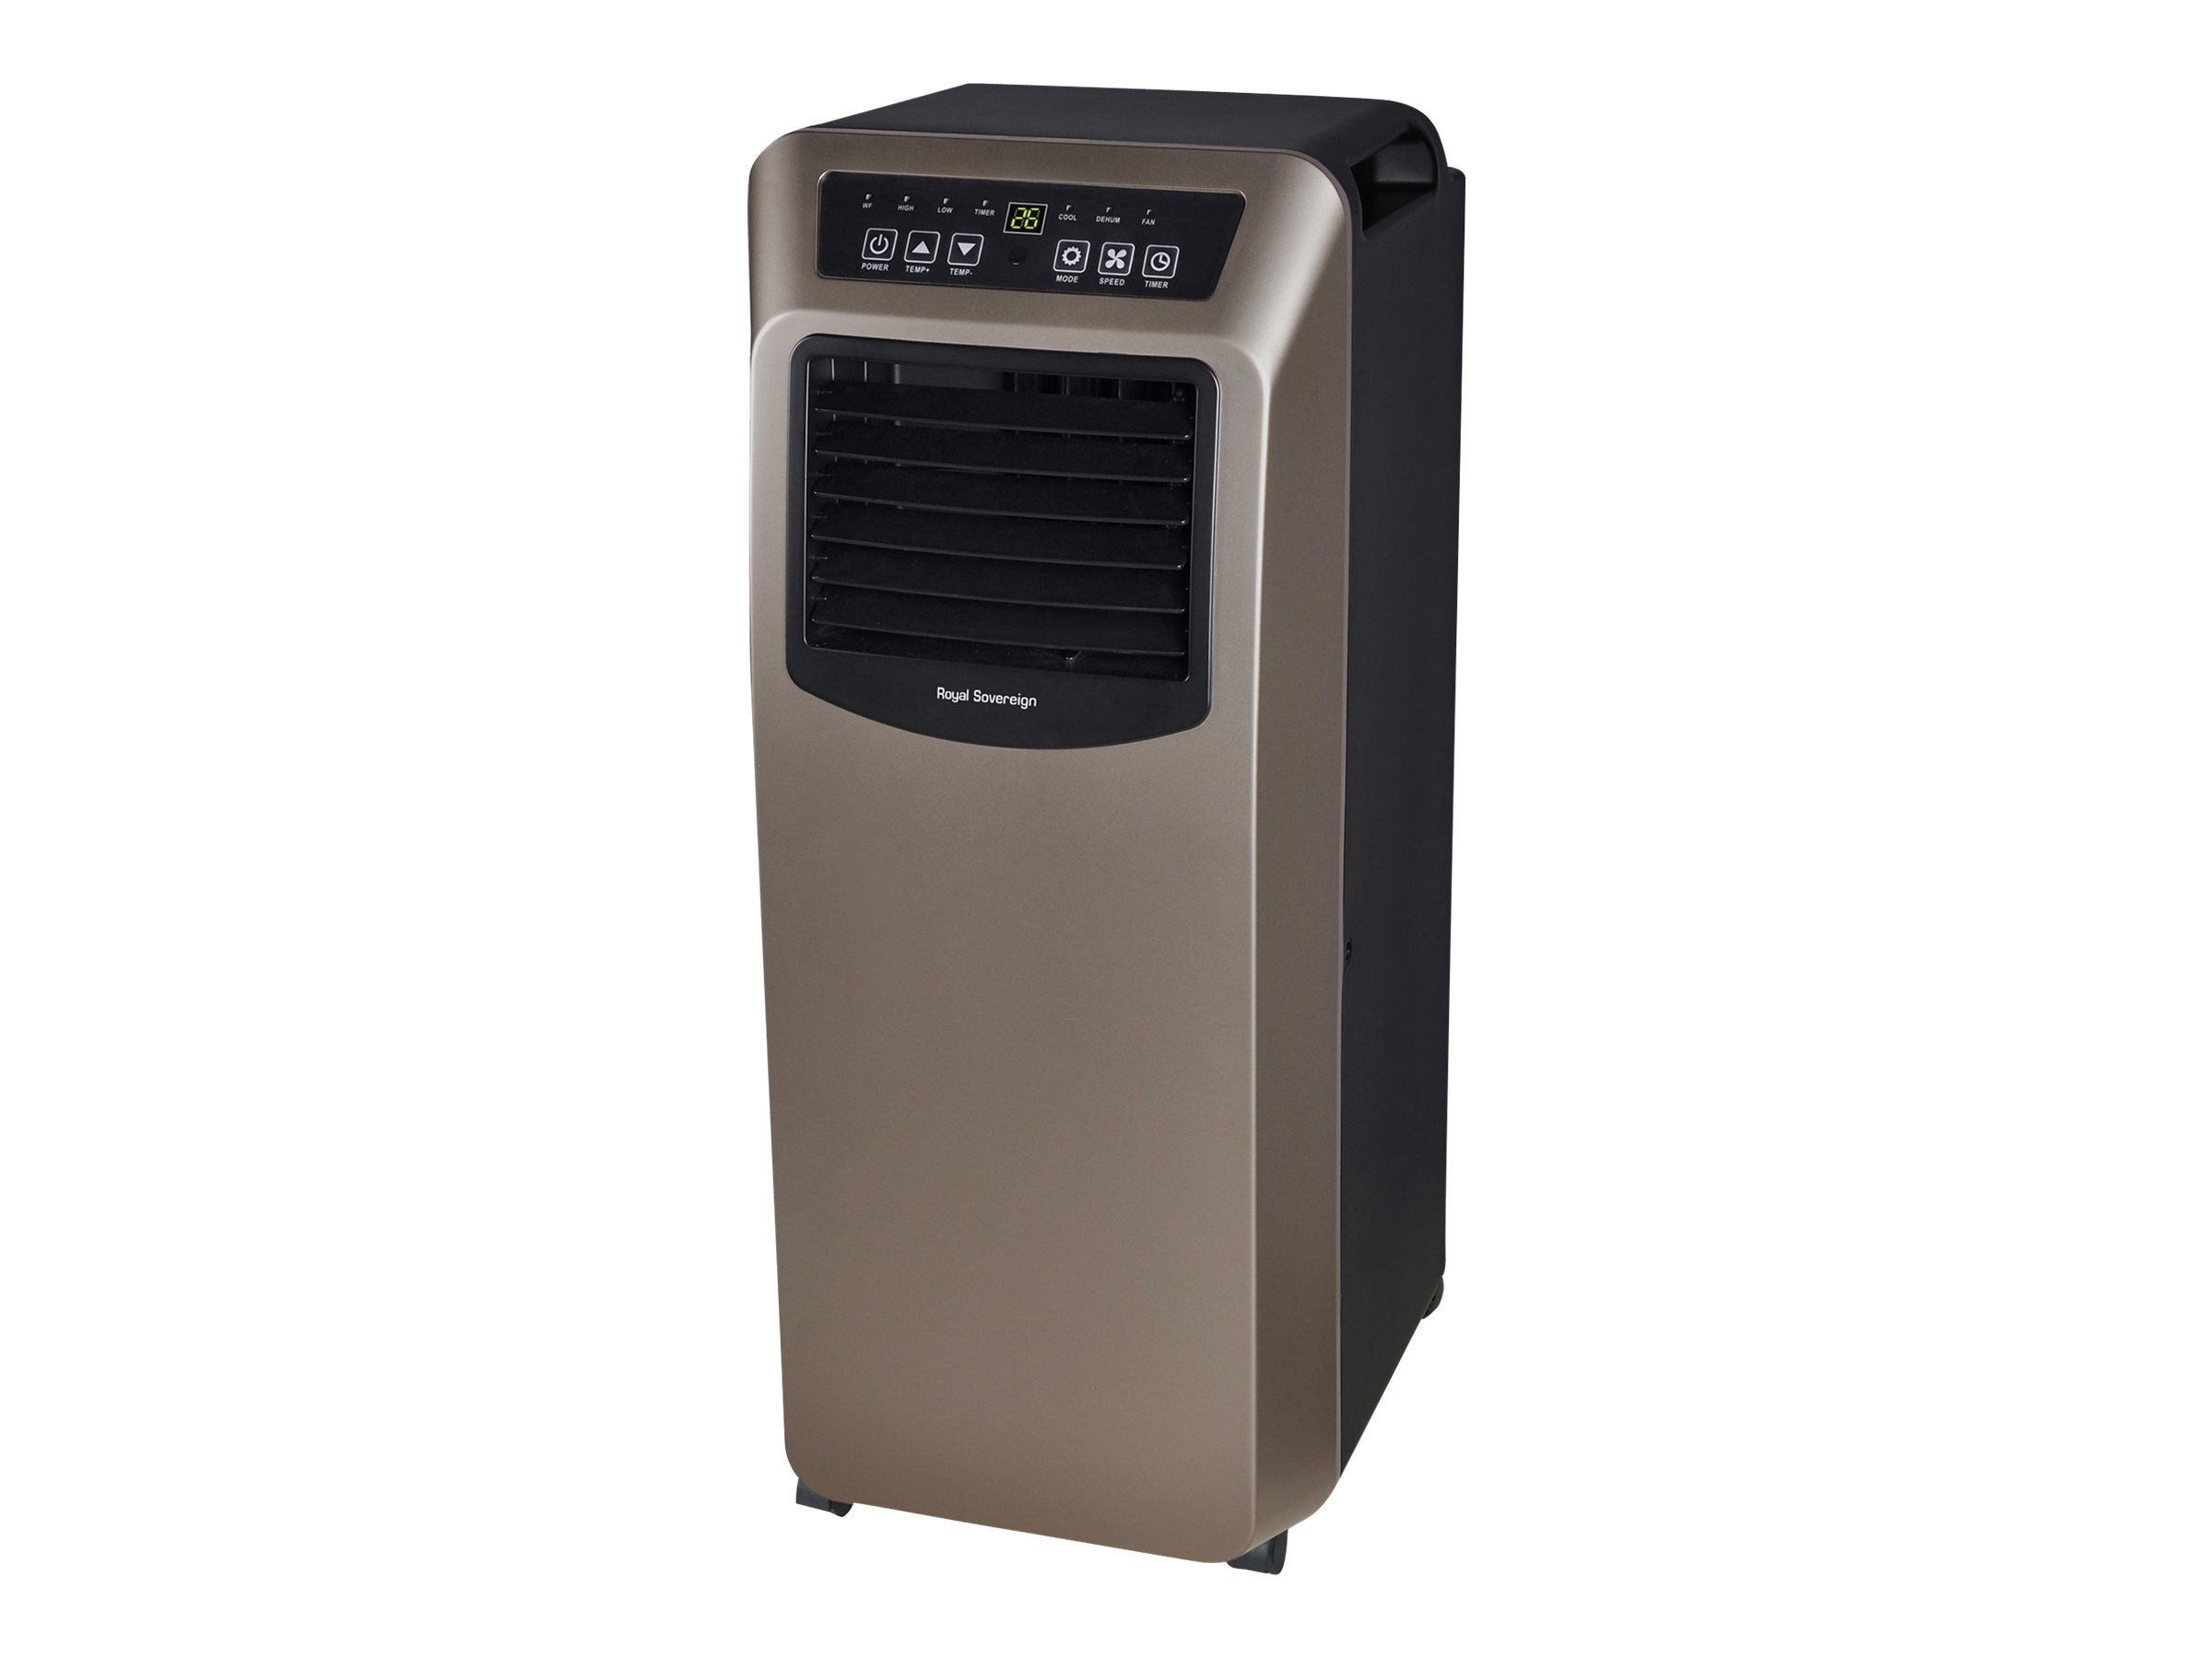 Royal Sovereign Slim 3-in-1 14000 BTU Portable Air Conditioner, ARP-7014, 22338740, Cooling Systems/Fans